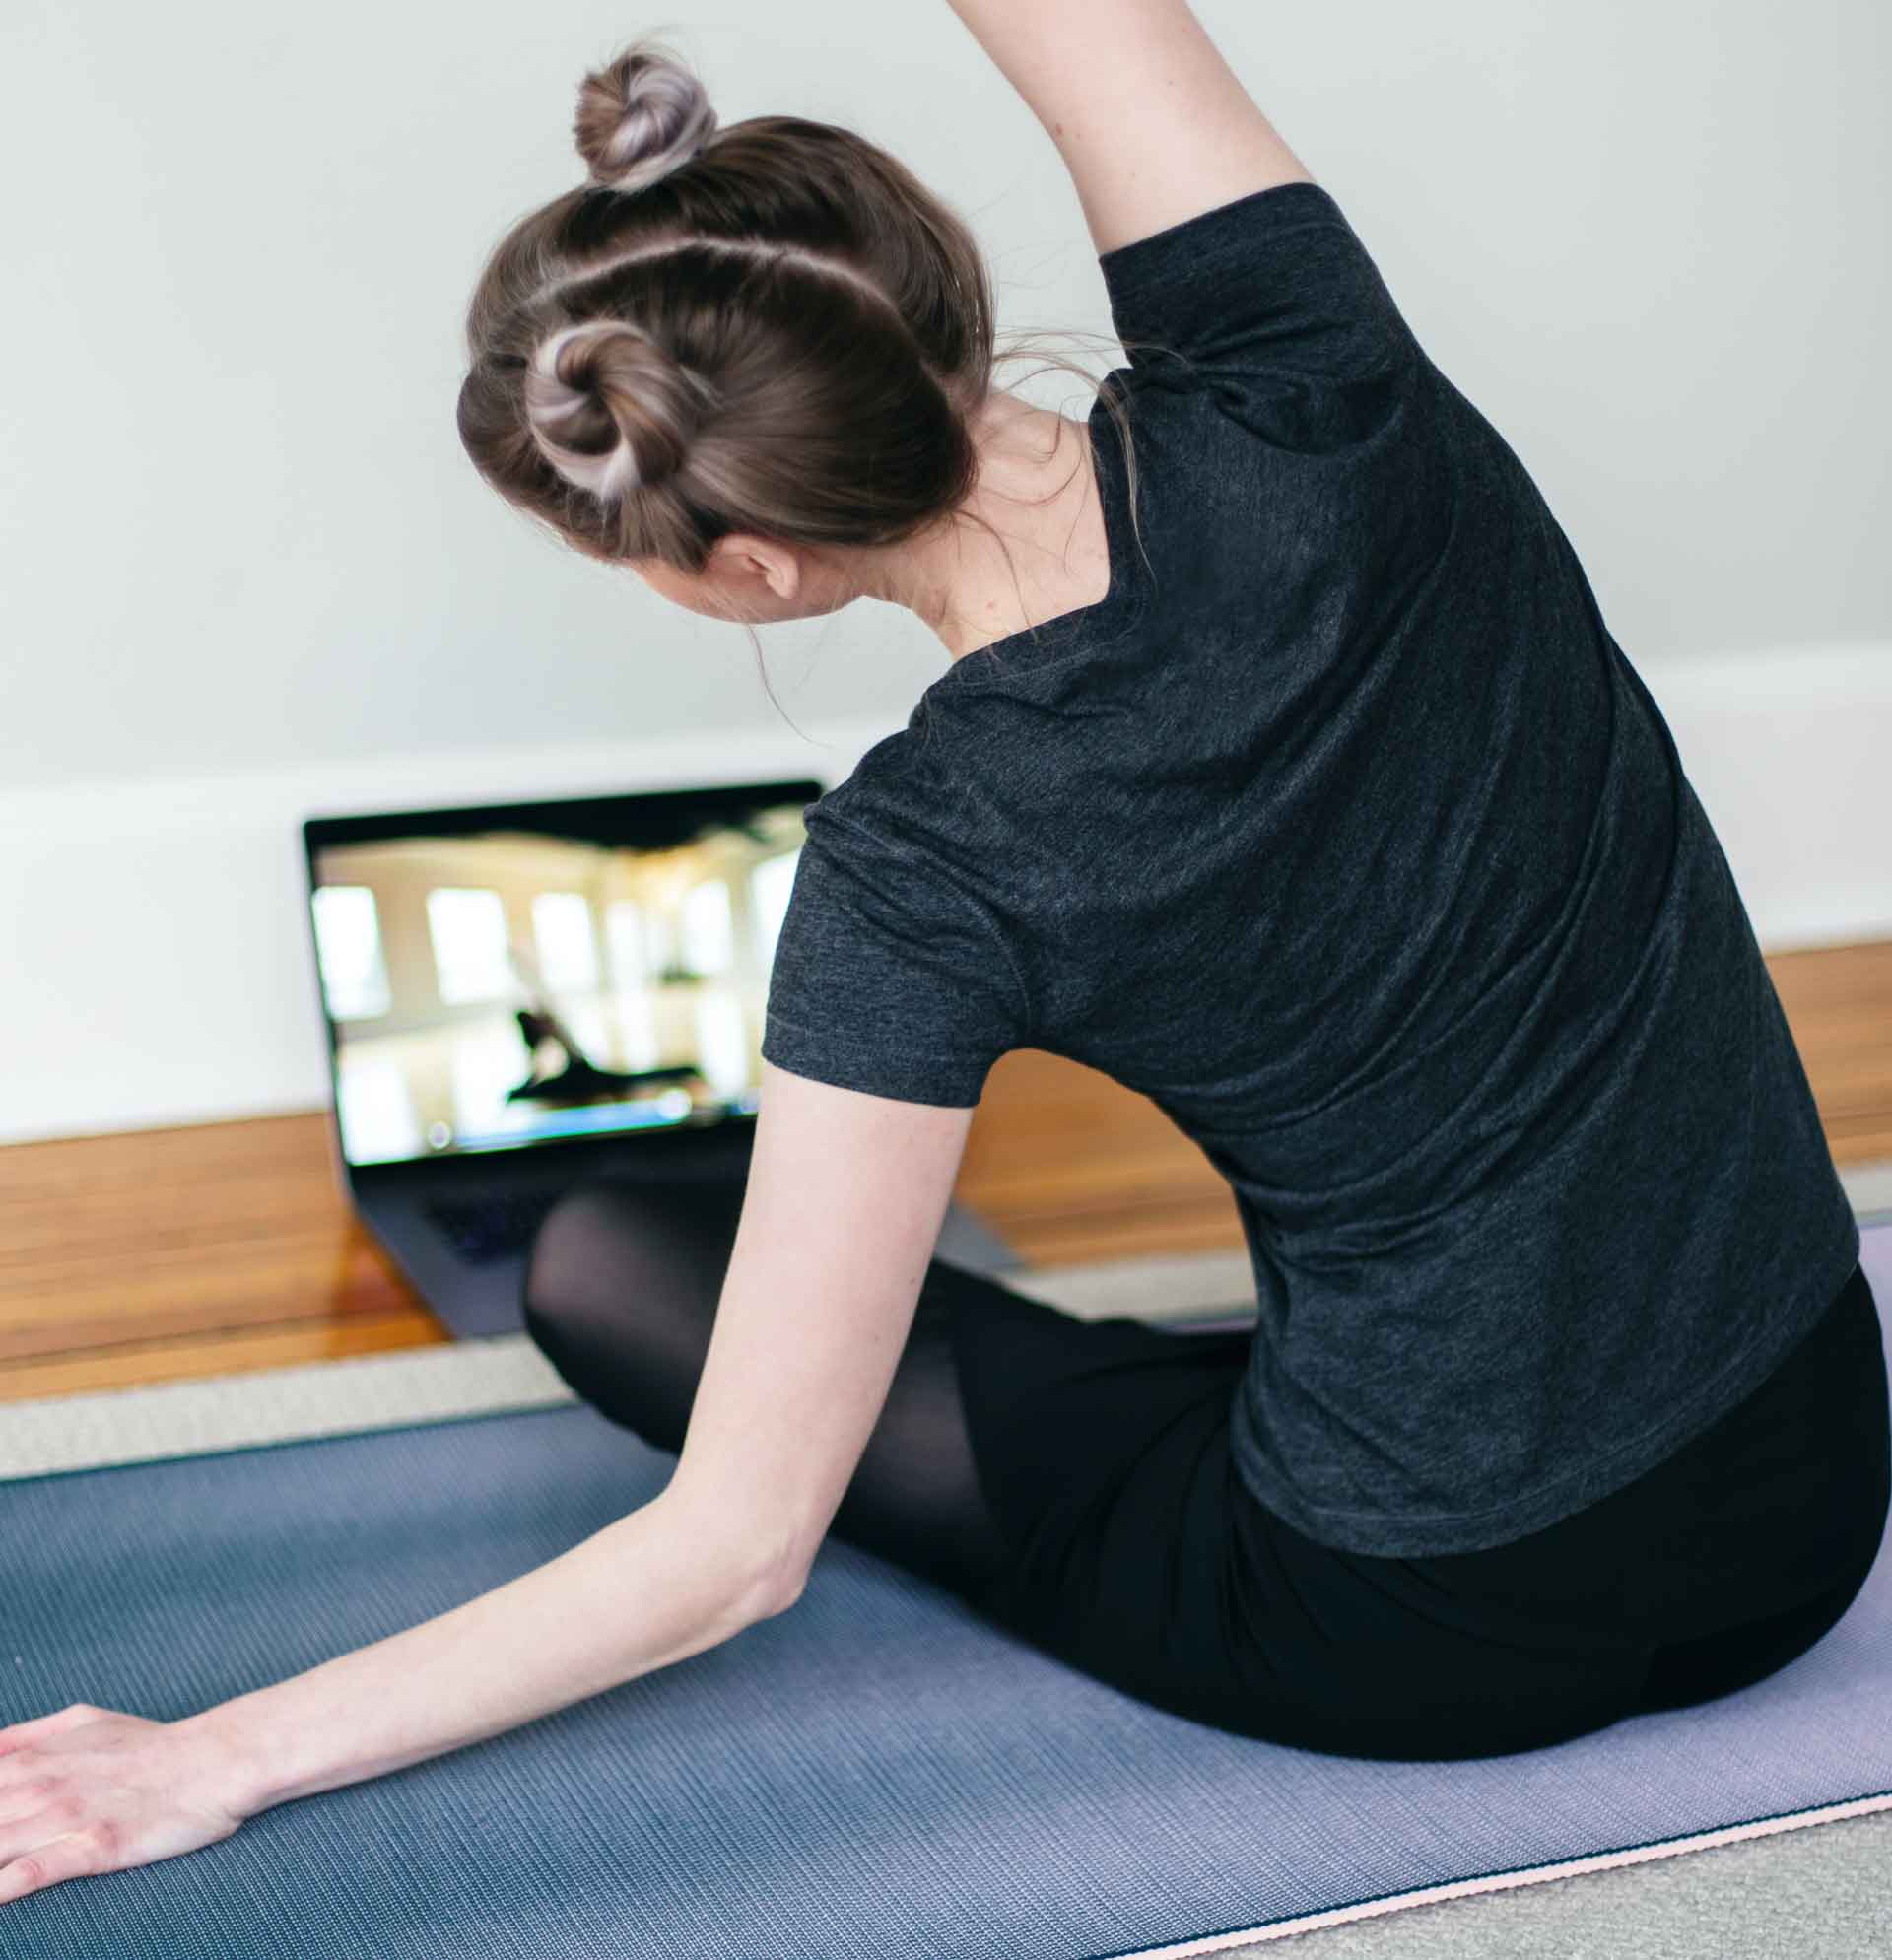 online exercise class